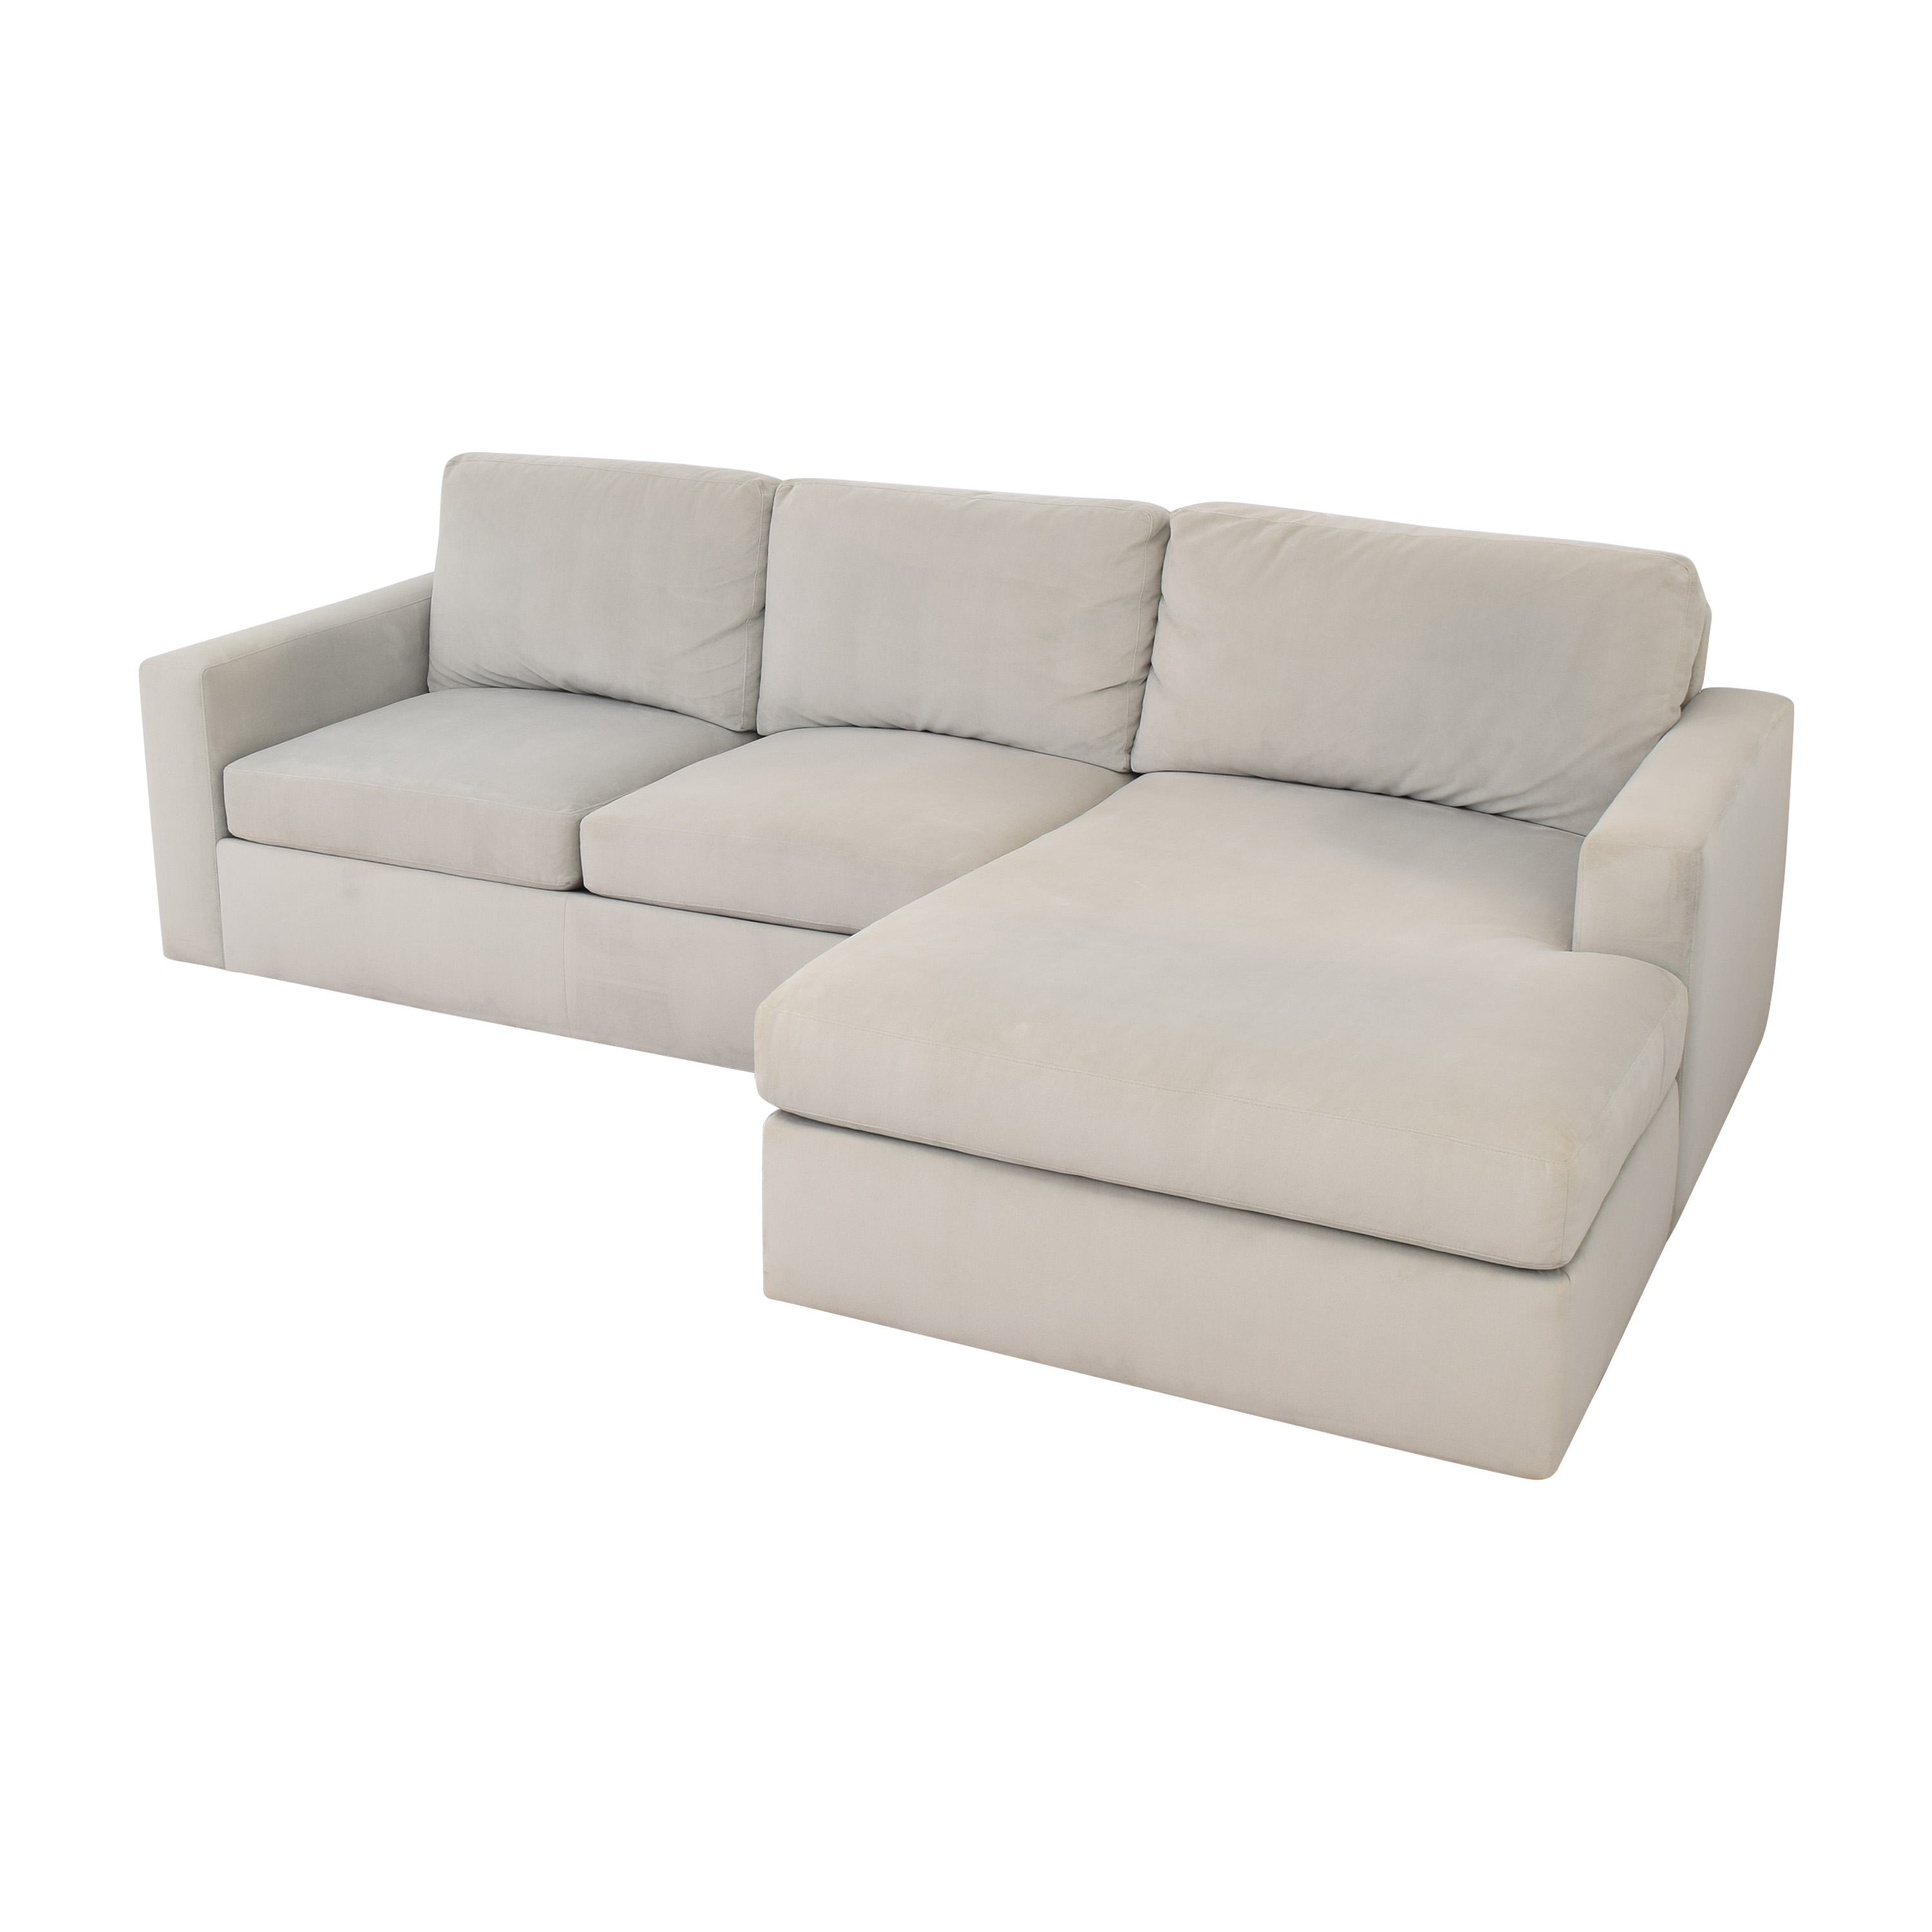 Room & Board Modern Sectional Sofa with Chaise sale